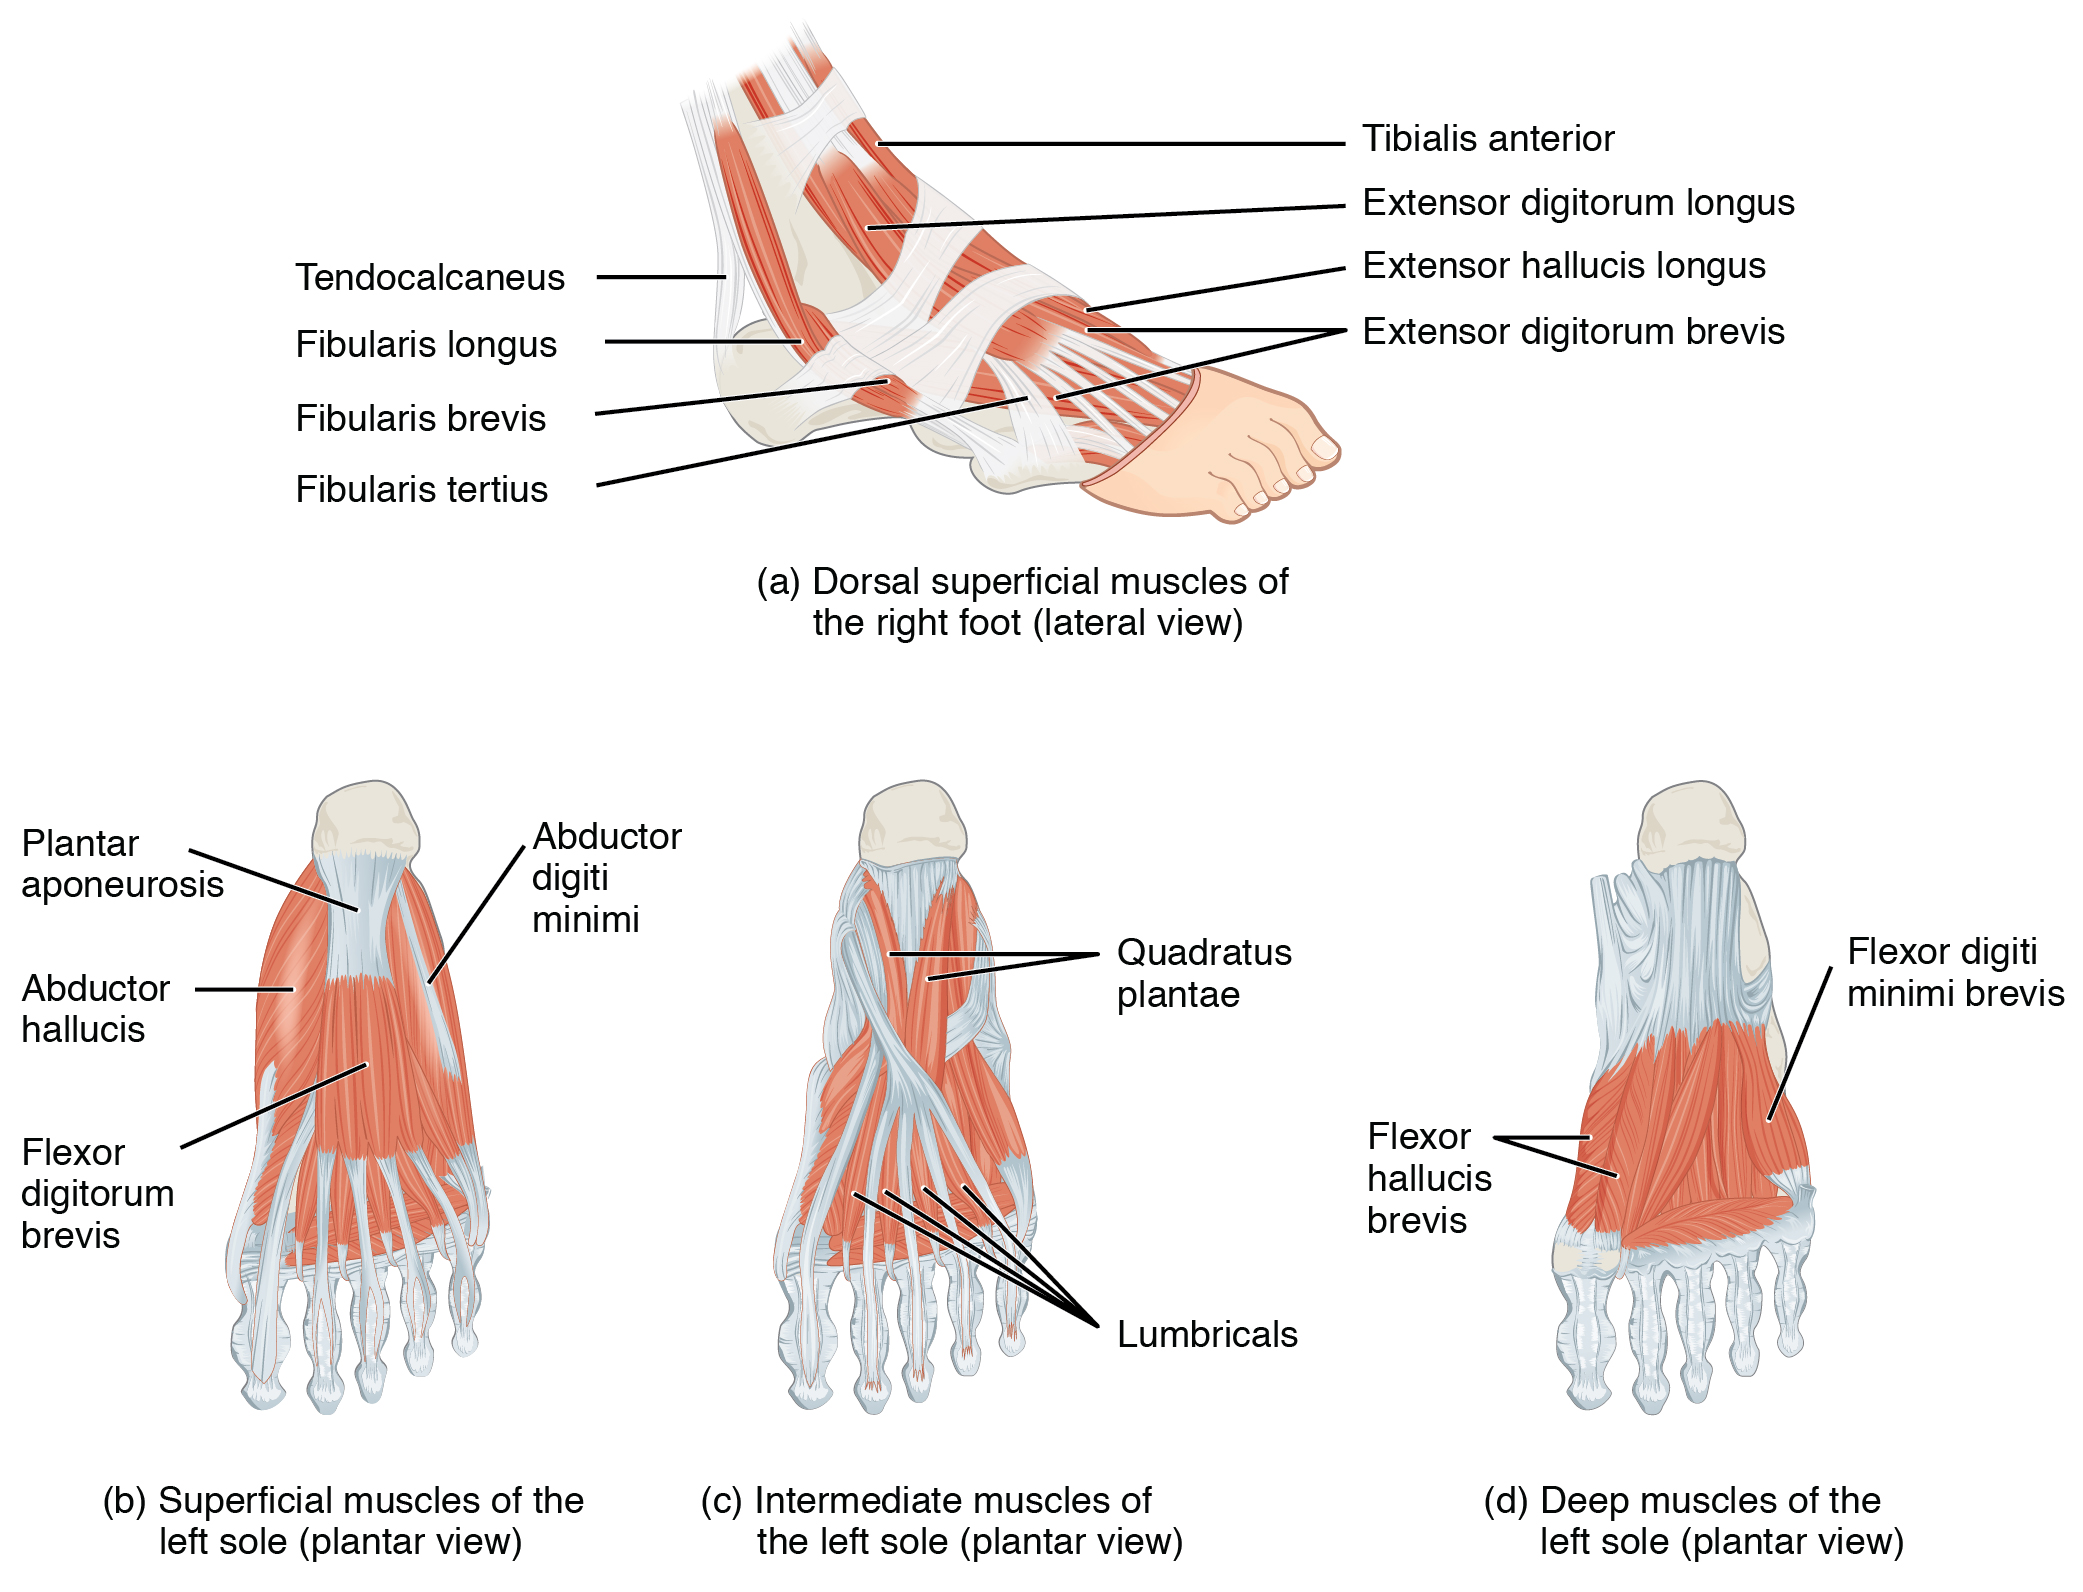 This Figure Shows The Muscles Of The Foot The Top Panel Shows The Lateral View Of The Dorsal